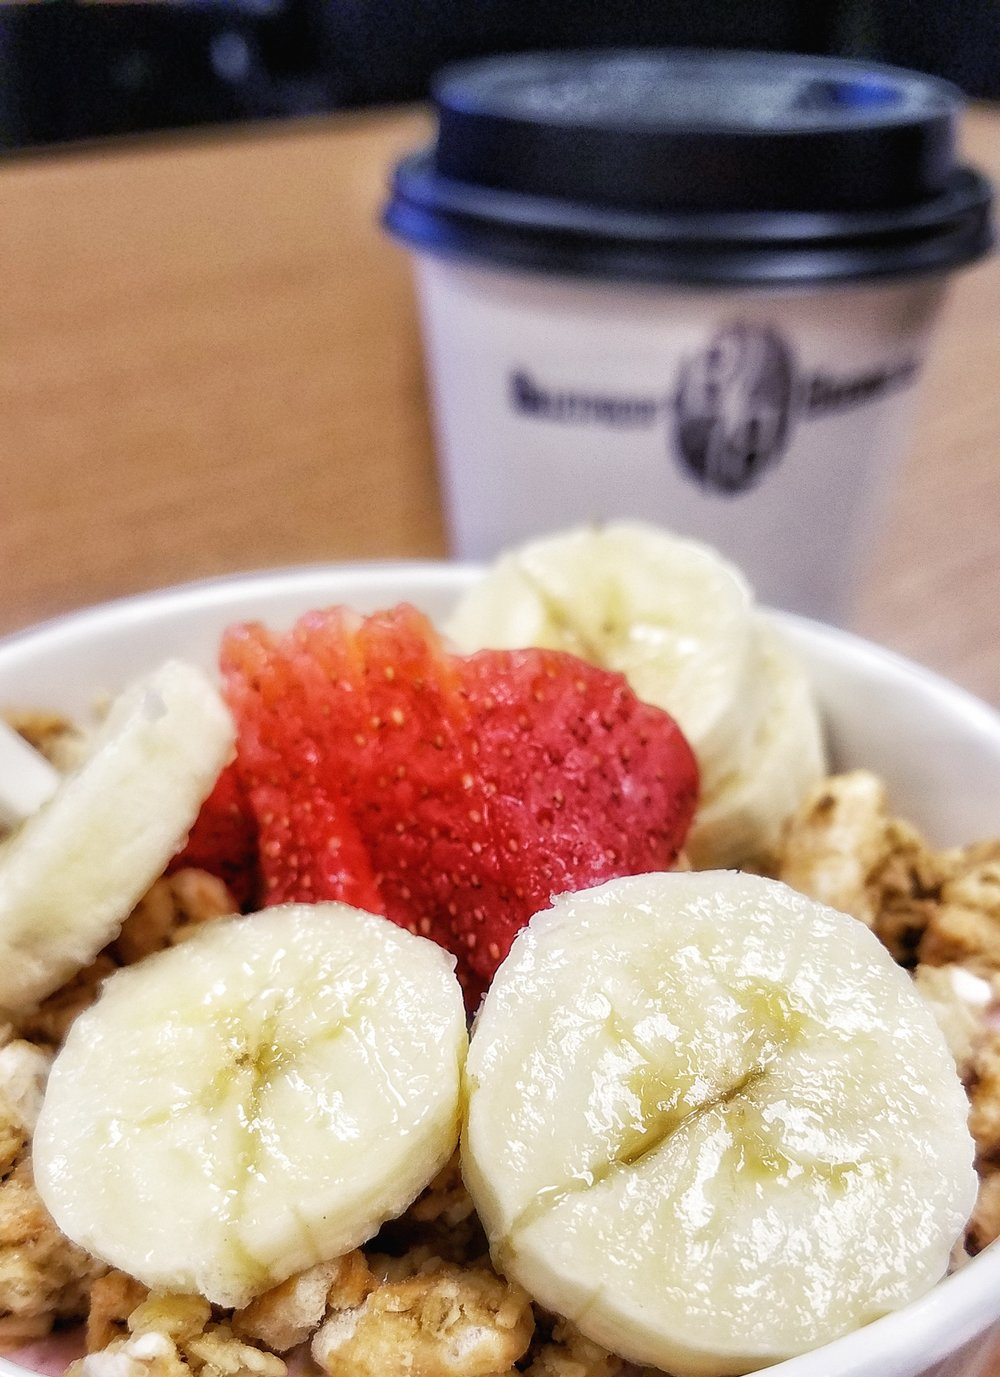 Strawberry bannana bowl with hemp granola, and coffee! Photo by London Howell-Farley